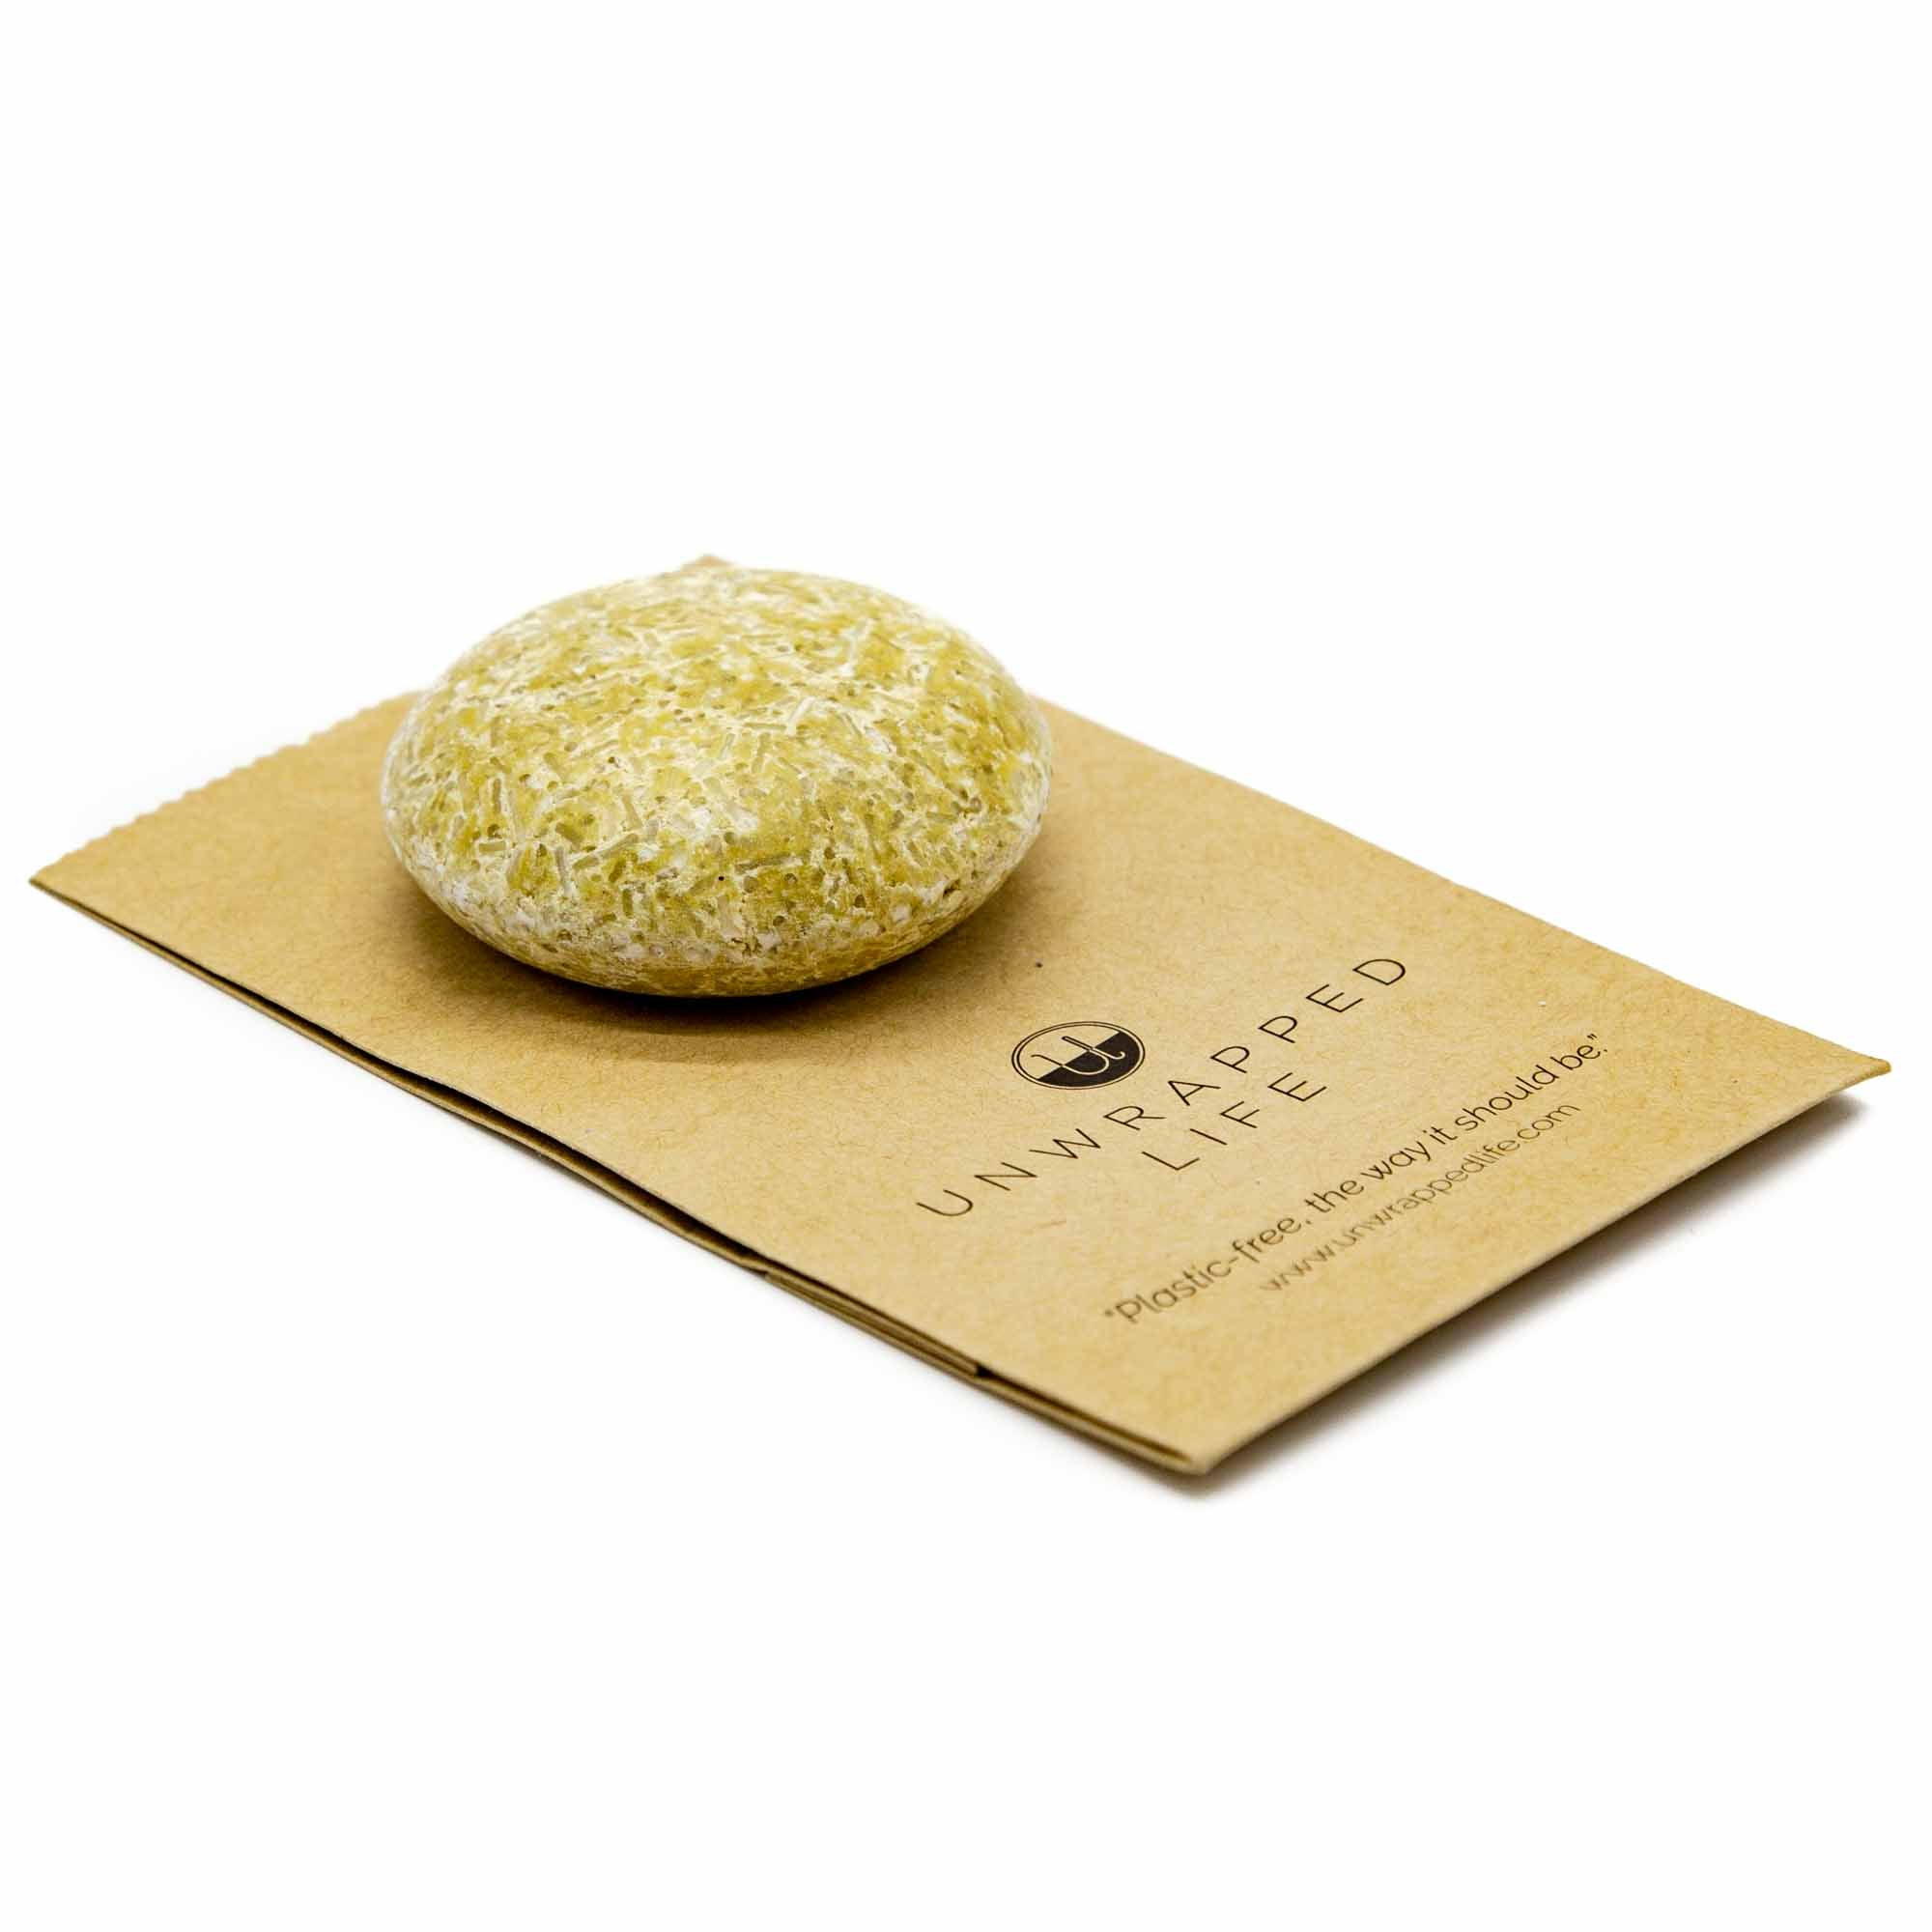 Unwrapped Life Shampoo Bar - 11 Varieties - Mortise And Tenon